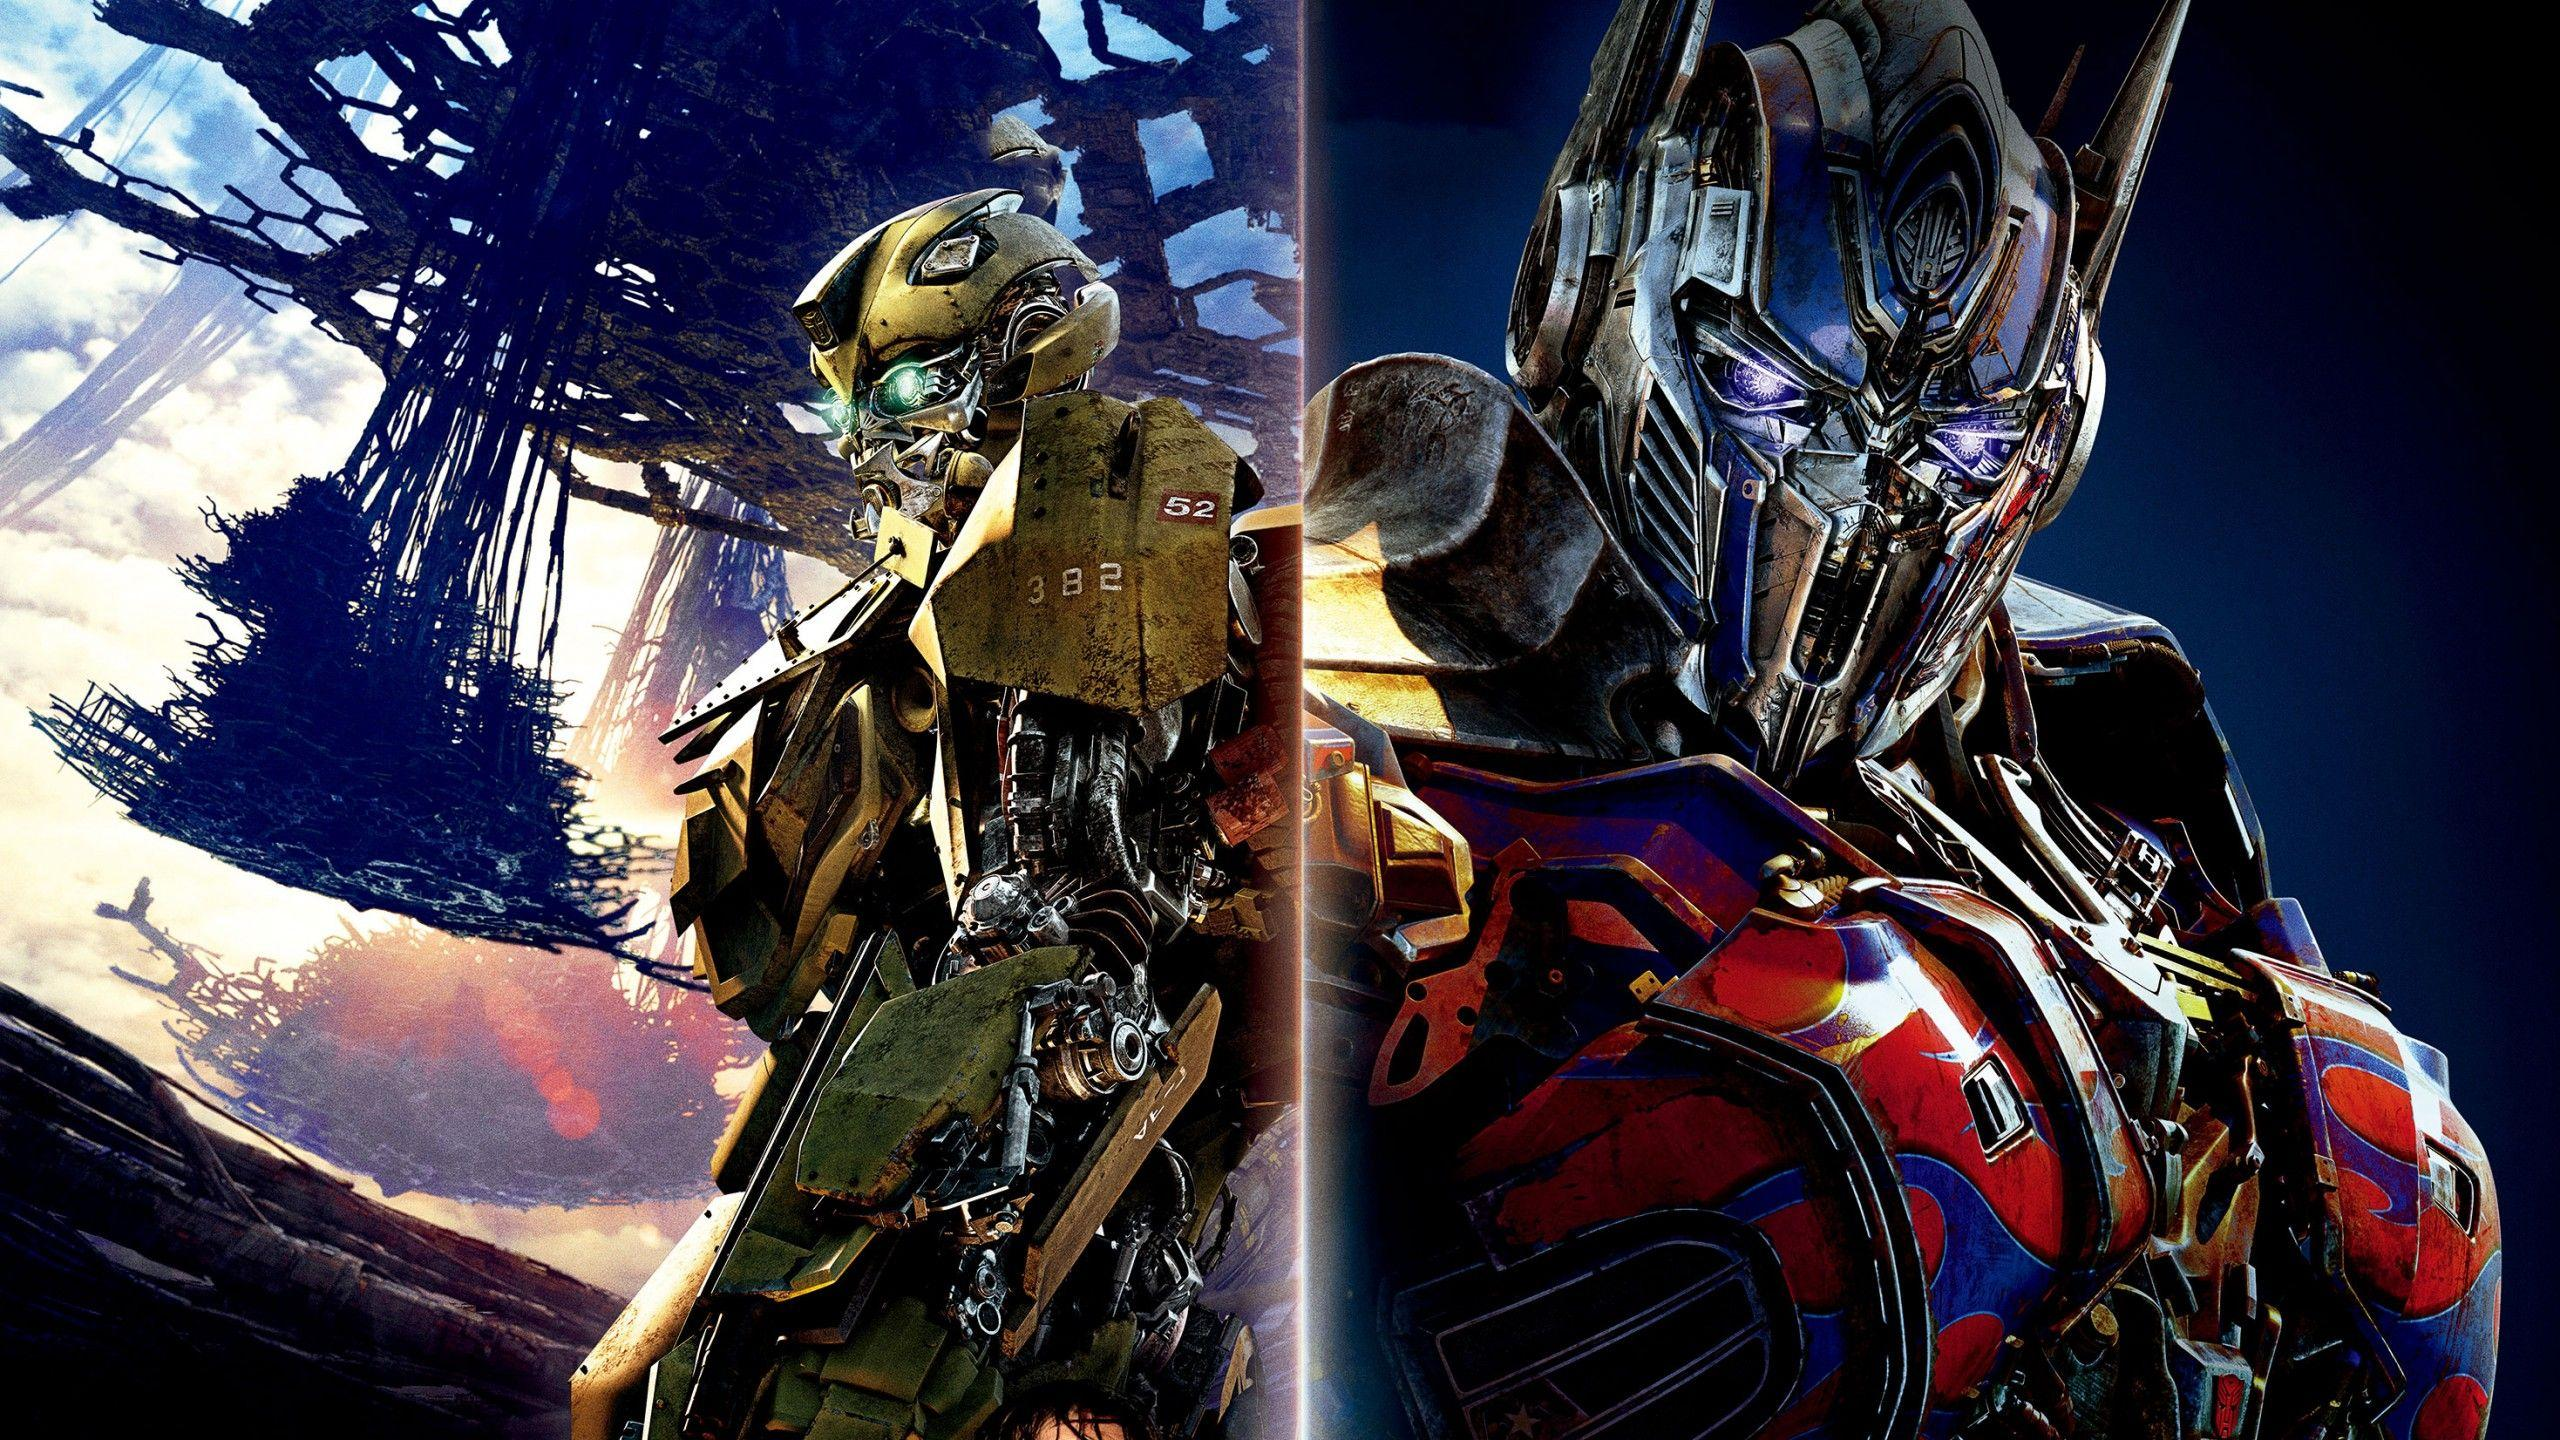 Wallpapers Transformers: The Last Knight, Optimus Prime, Bumblebee